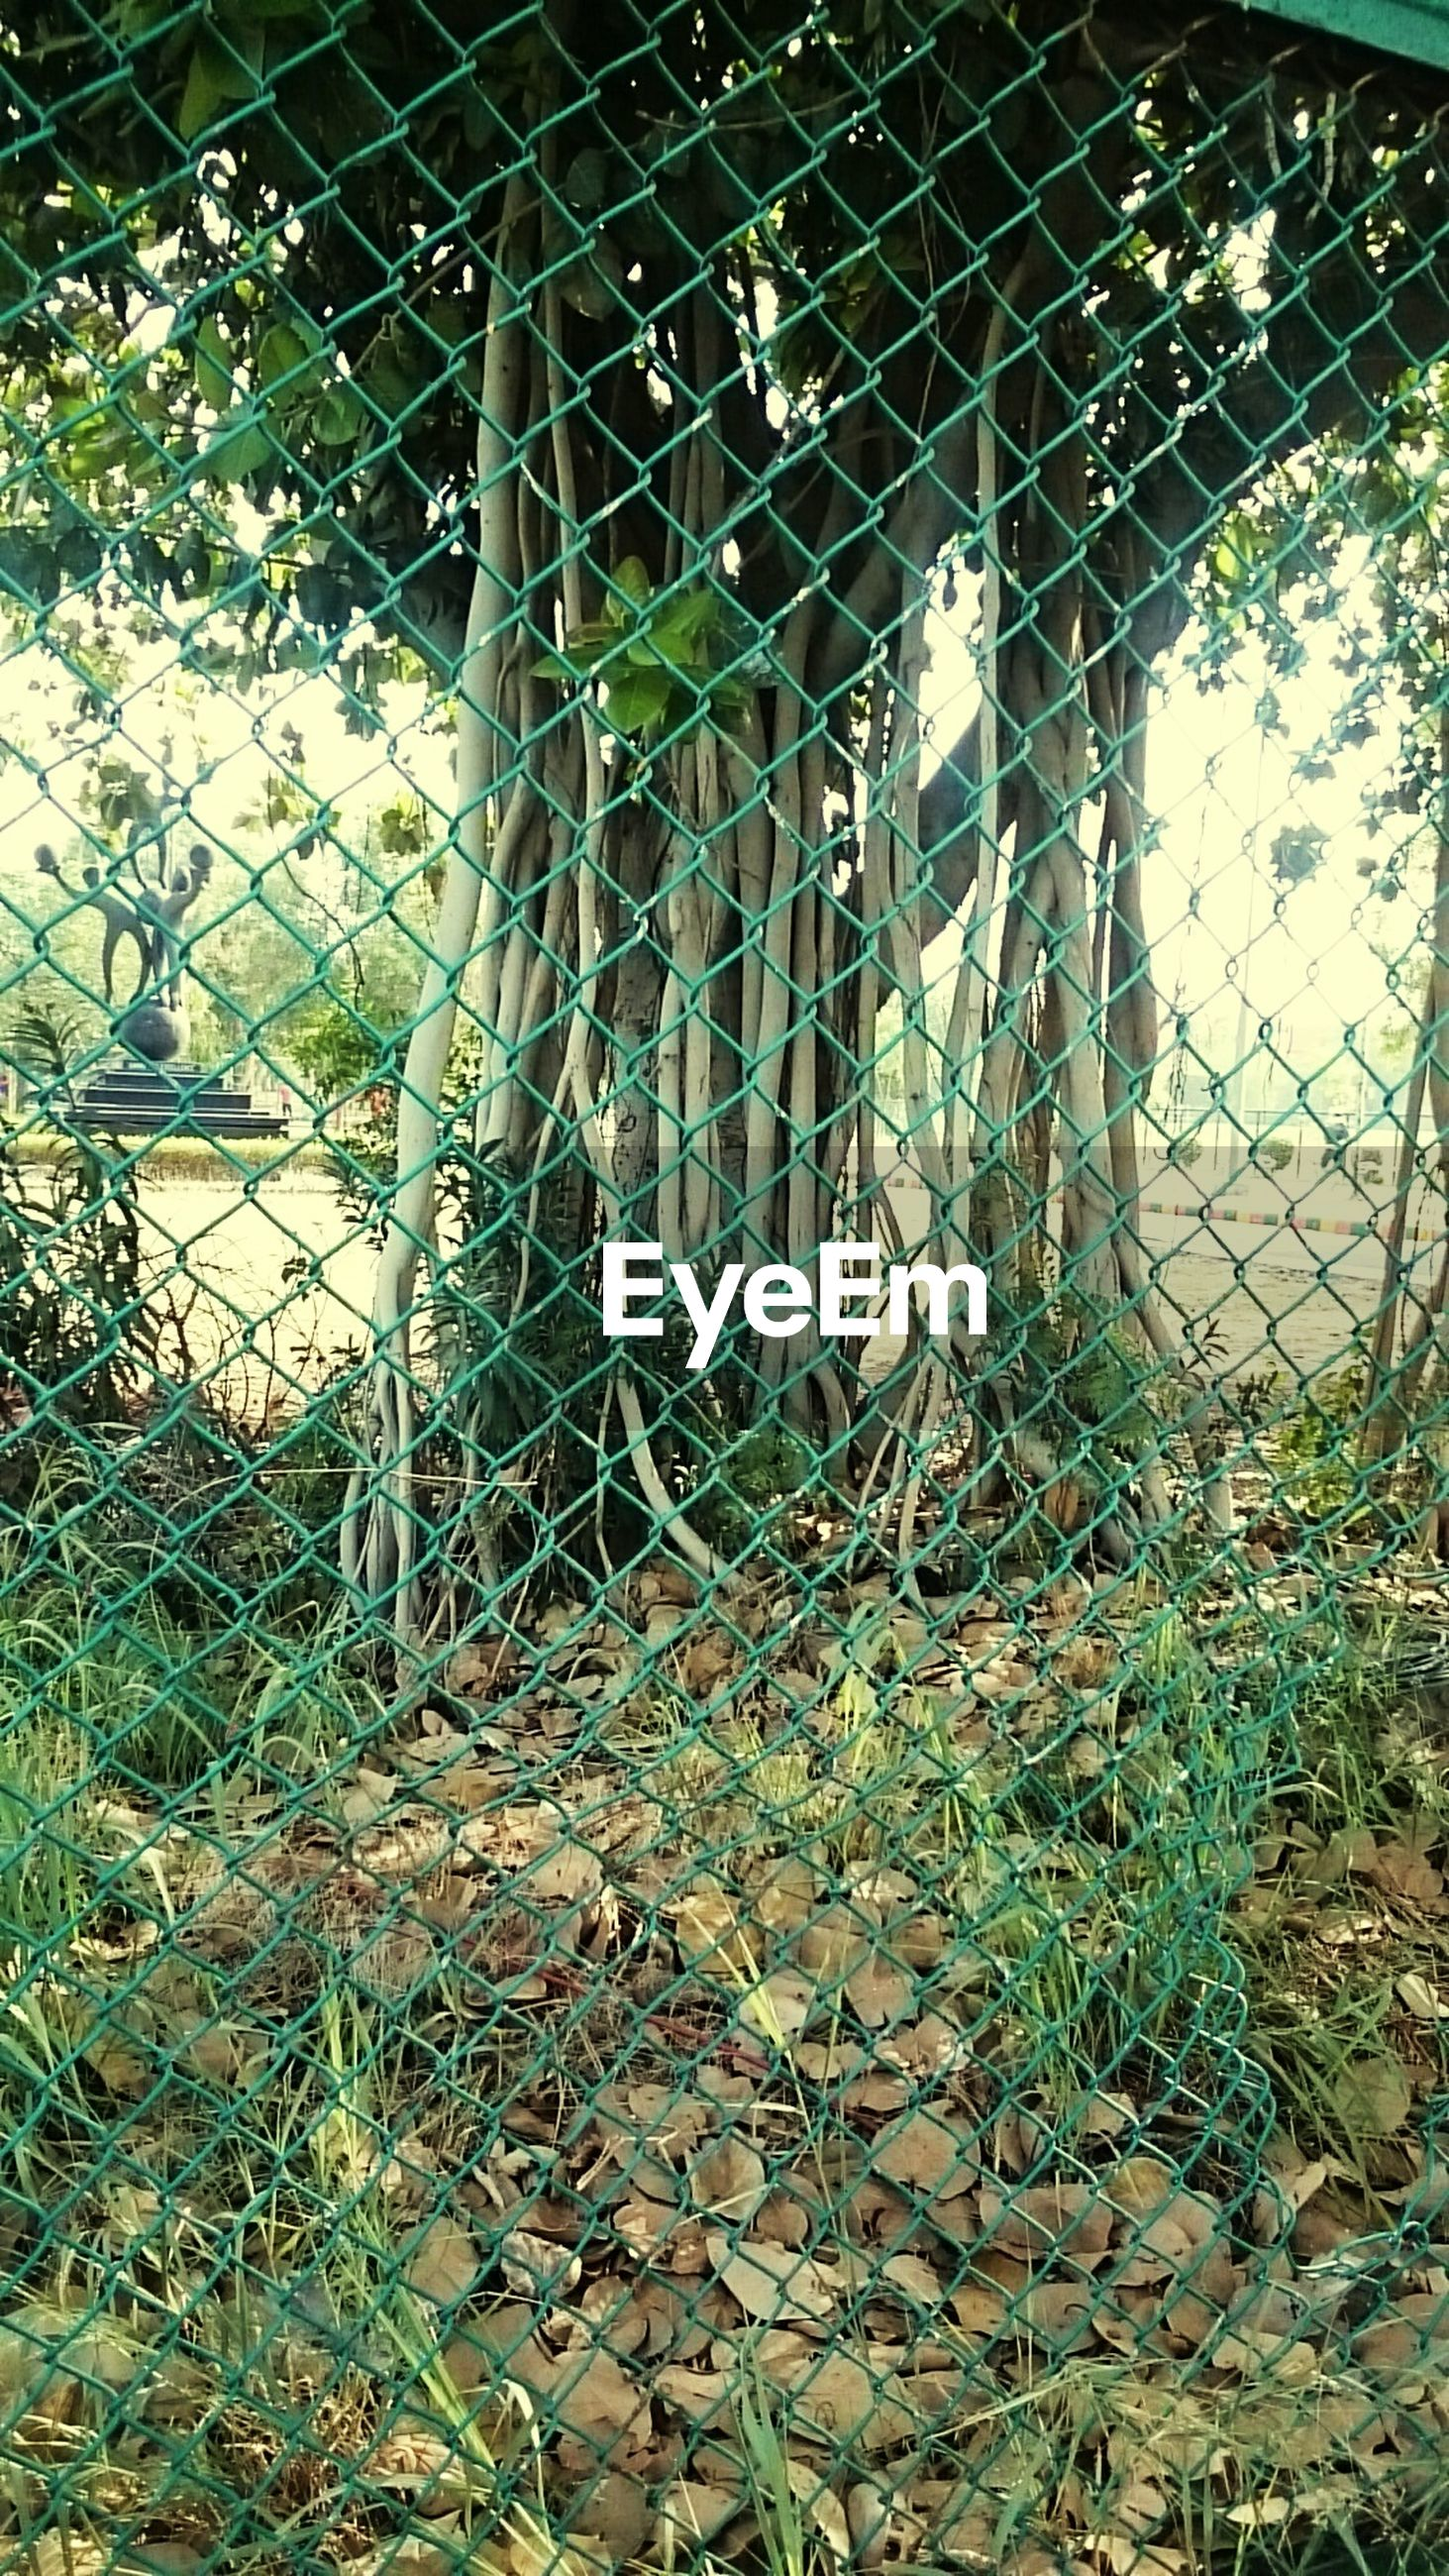 chainlink fence, metal, fence, tree, protection, plant, grass, abandoned, water, safety, day, security, nature, outdoors, no people, broken, sunlight, built structure, tranquility, growth